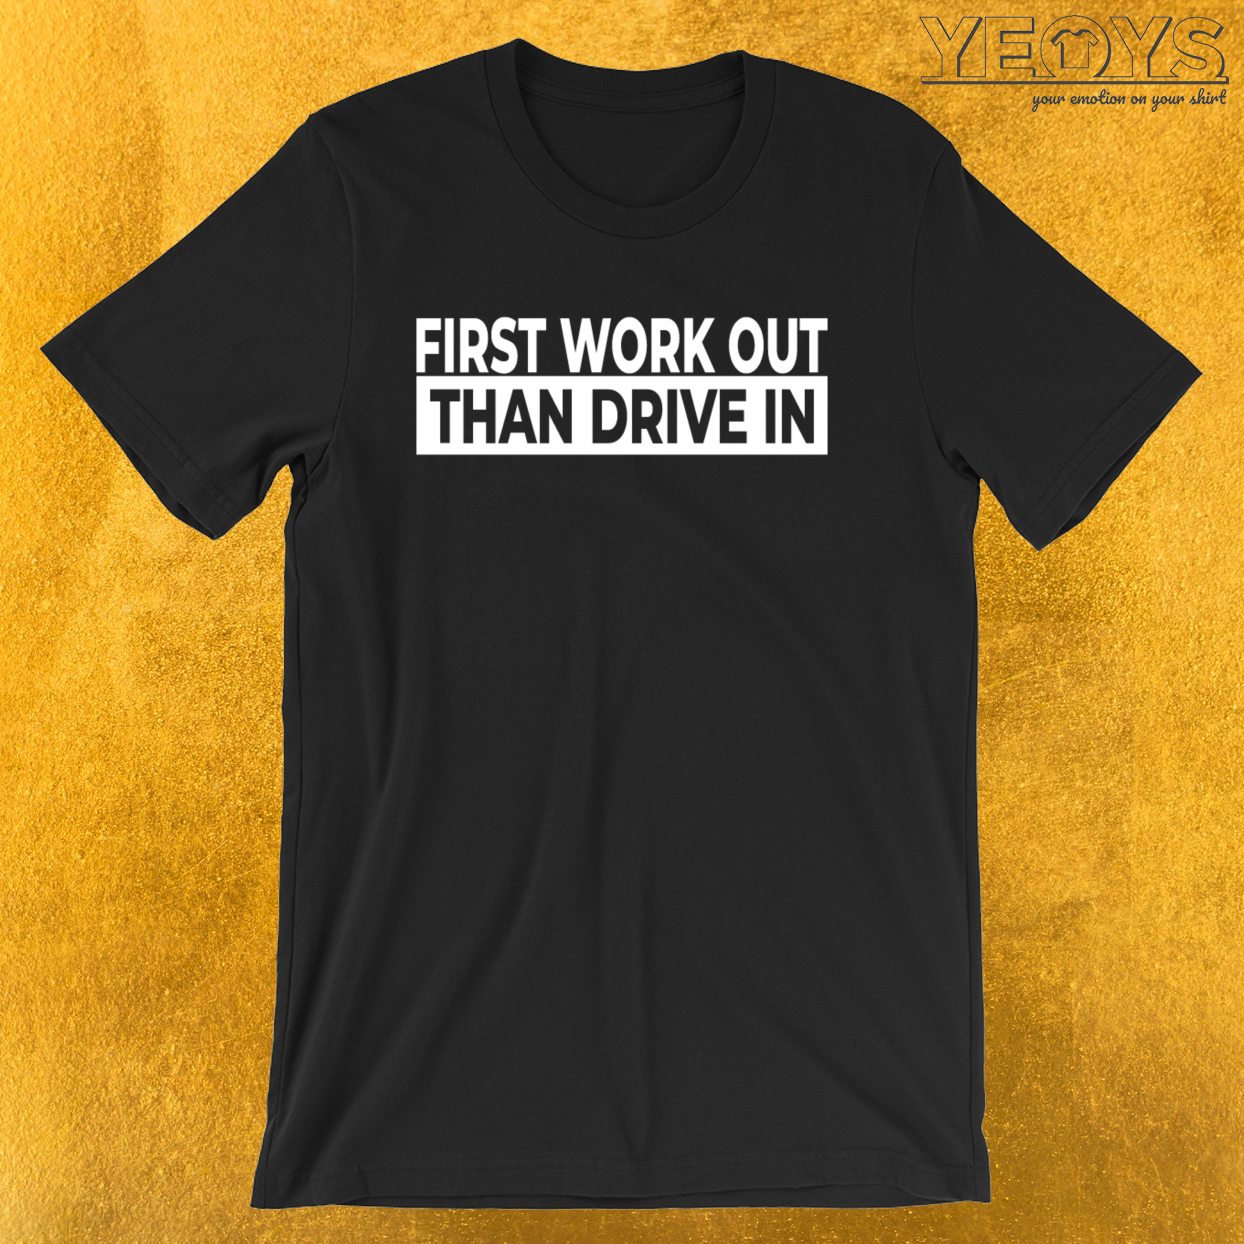 First Work Out Than Drive In – Weightlifting Tee